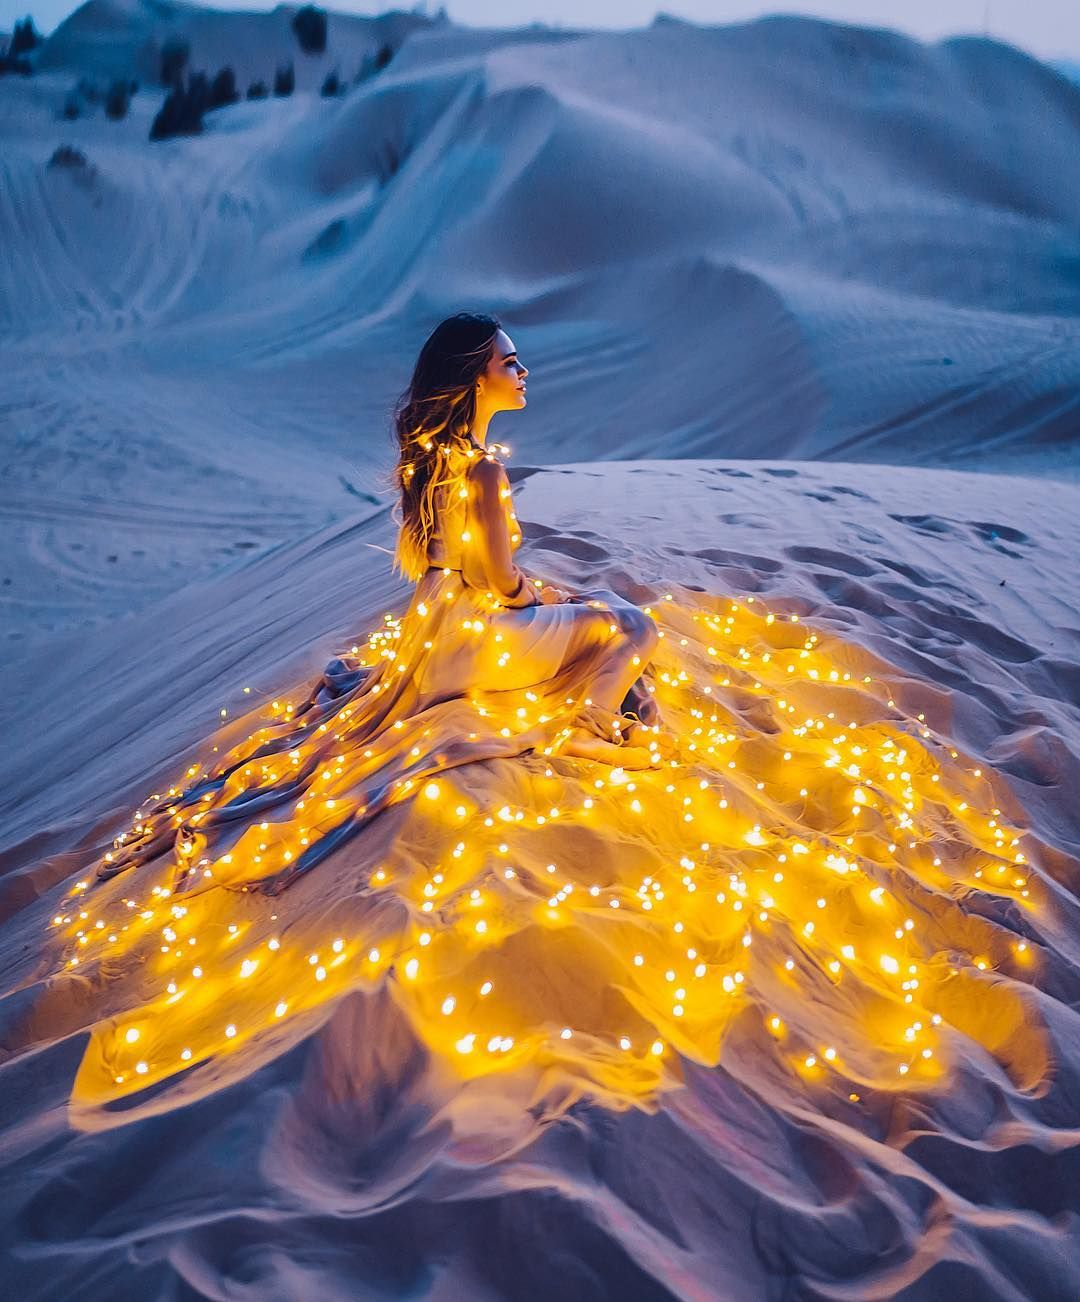 Russian Photographer Kristina Makeeva Captures Women In Dresses Set Against Magical Landscapes